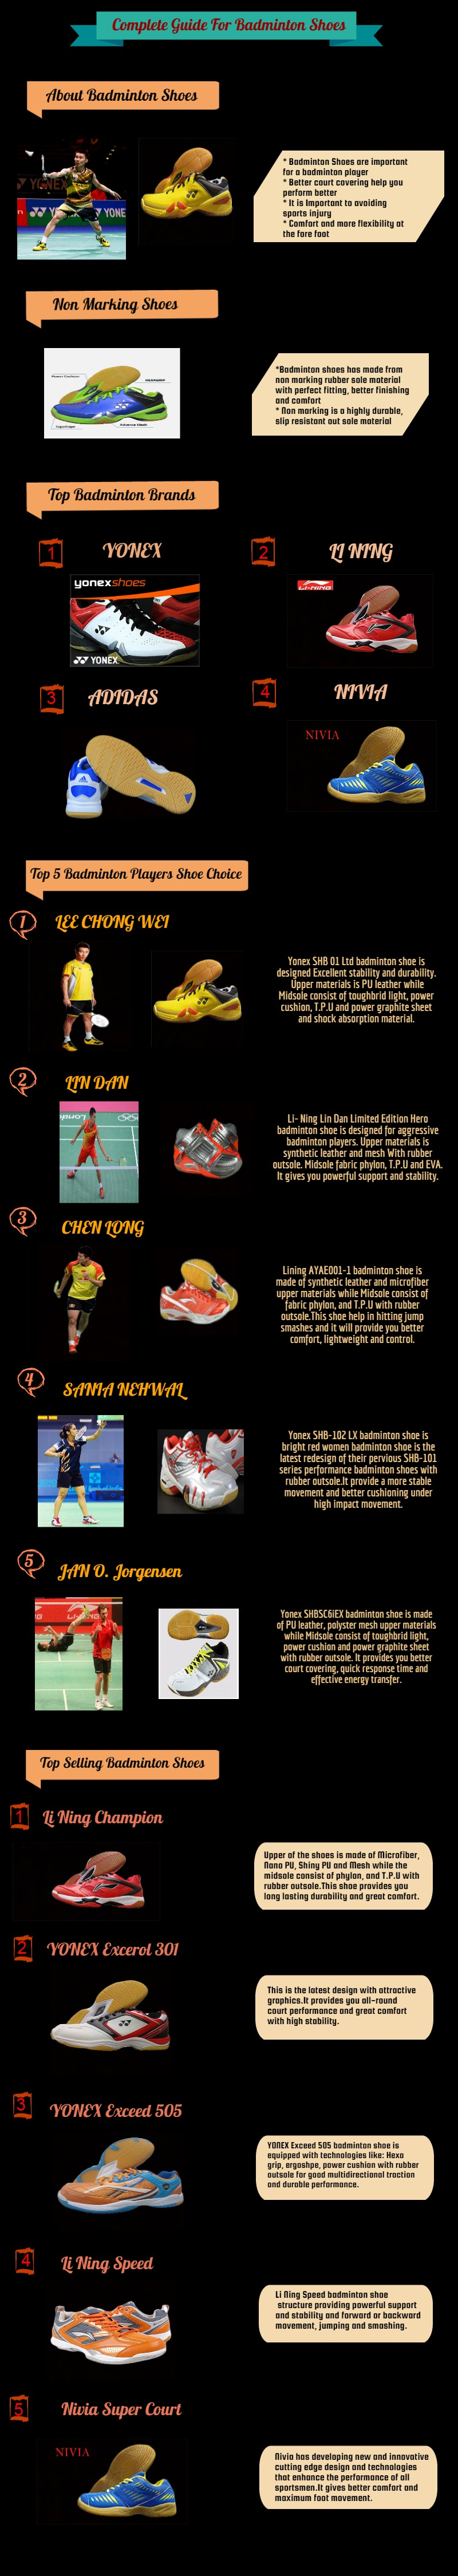 complete guide for badminton shoes